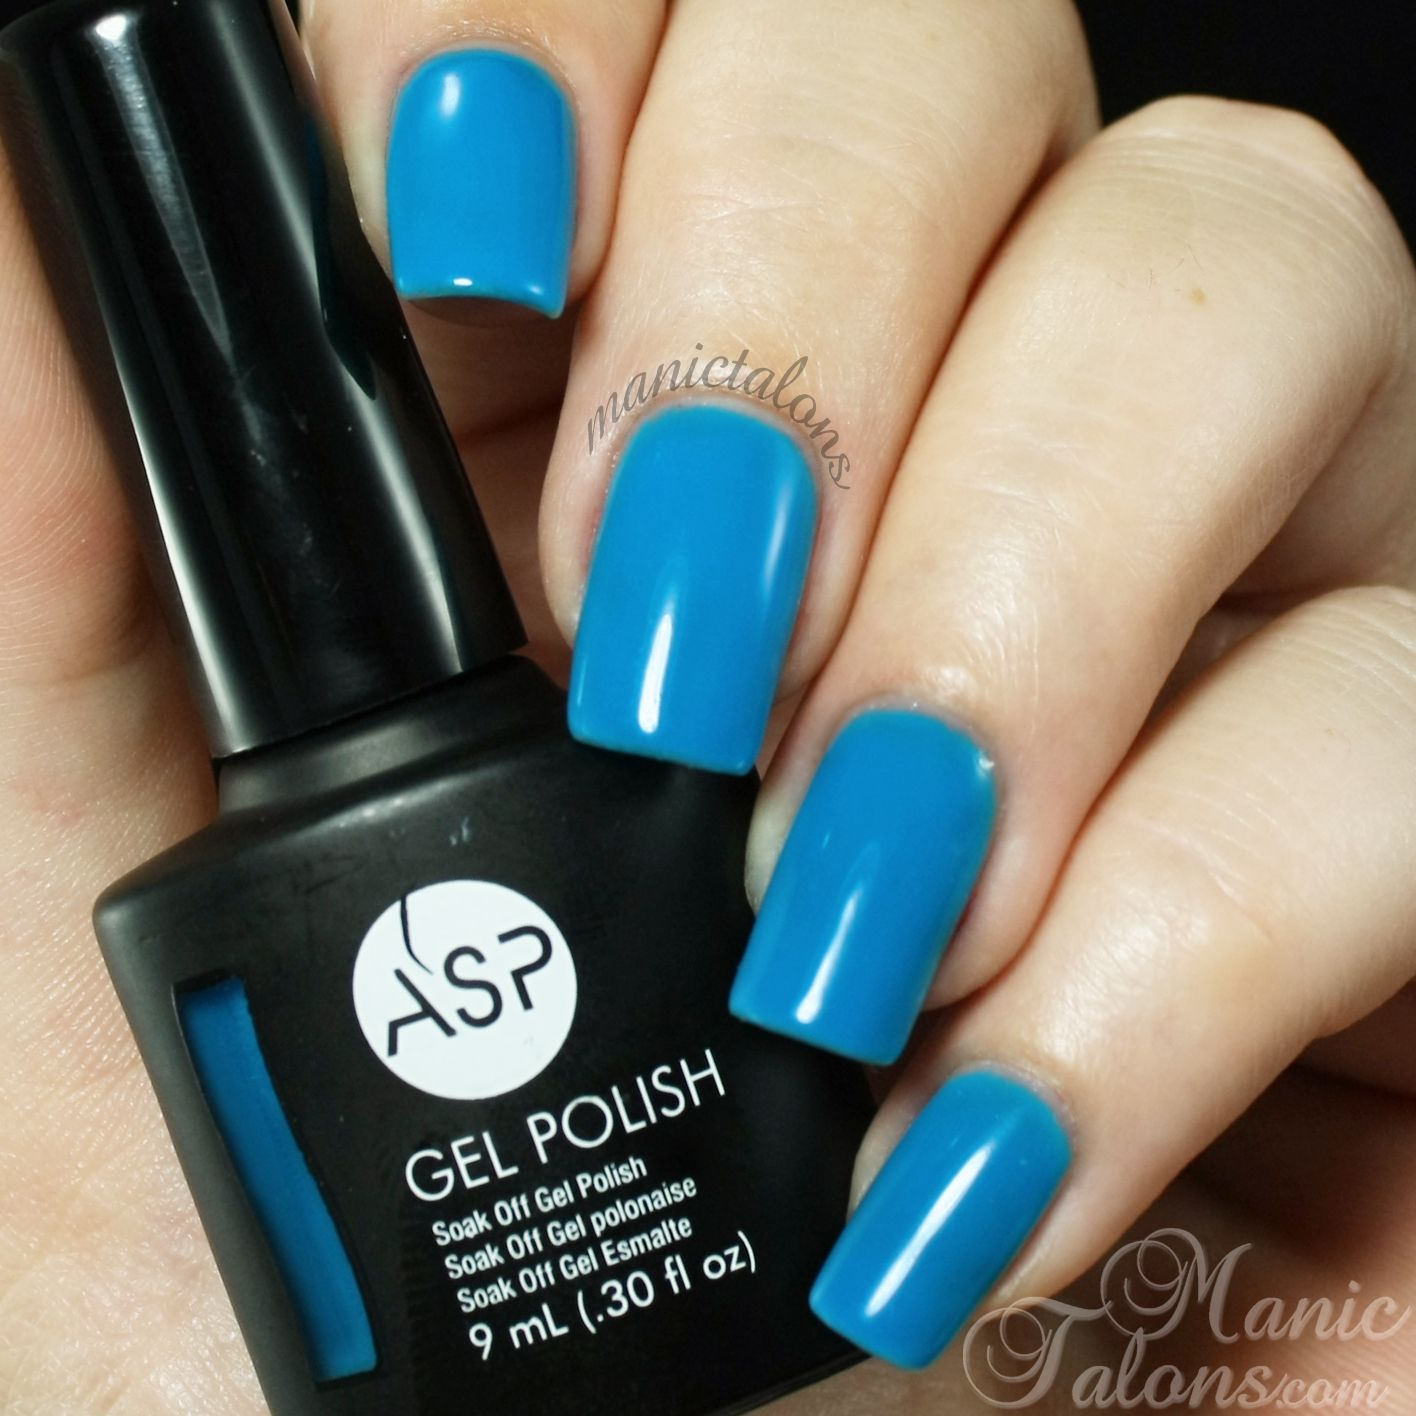 Asp Gel Polish Alluring Azure Sold By Manic Talons Destash More Products From On Nvy The Home Of Independent Small